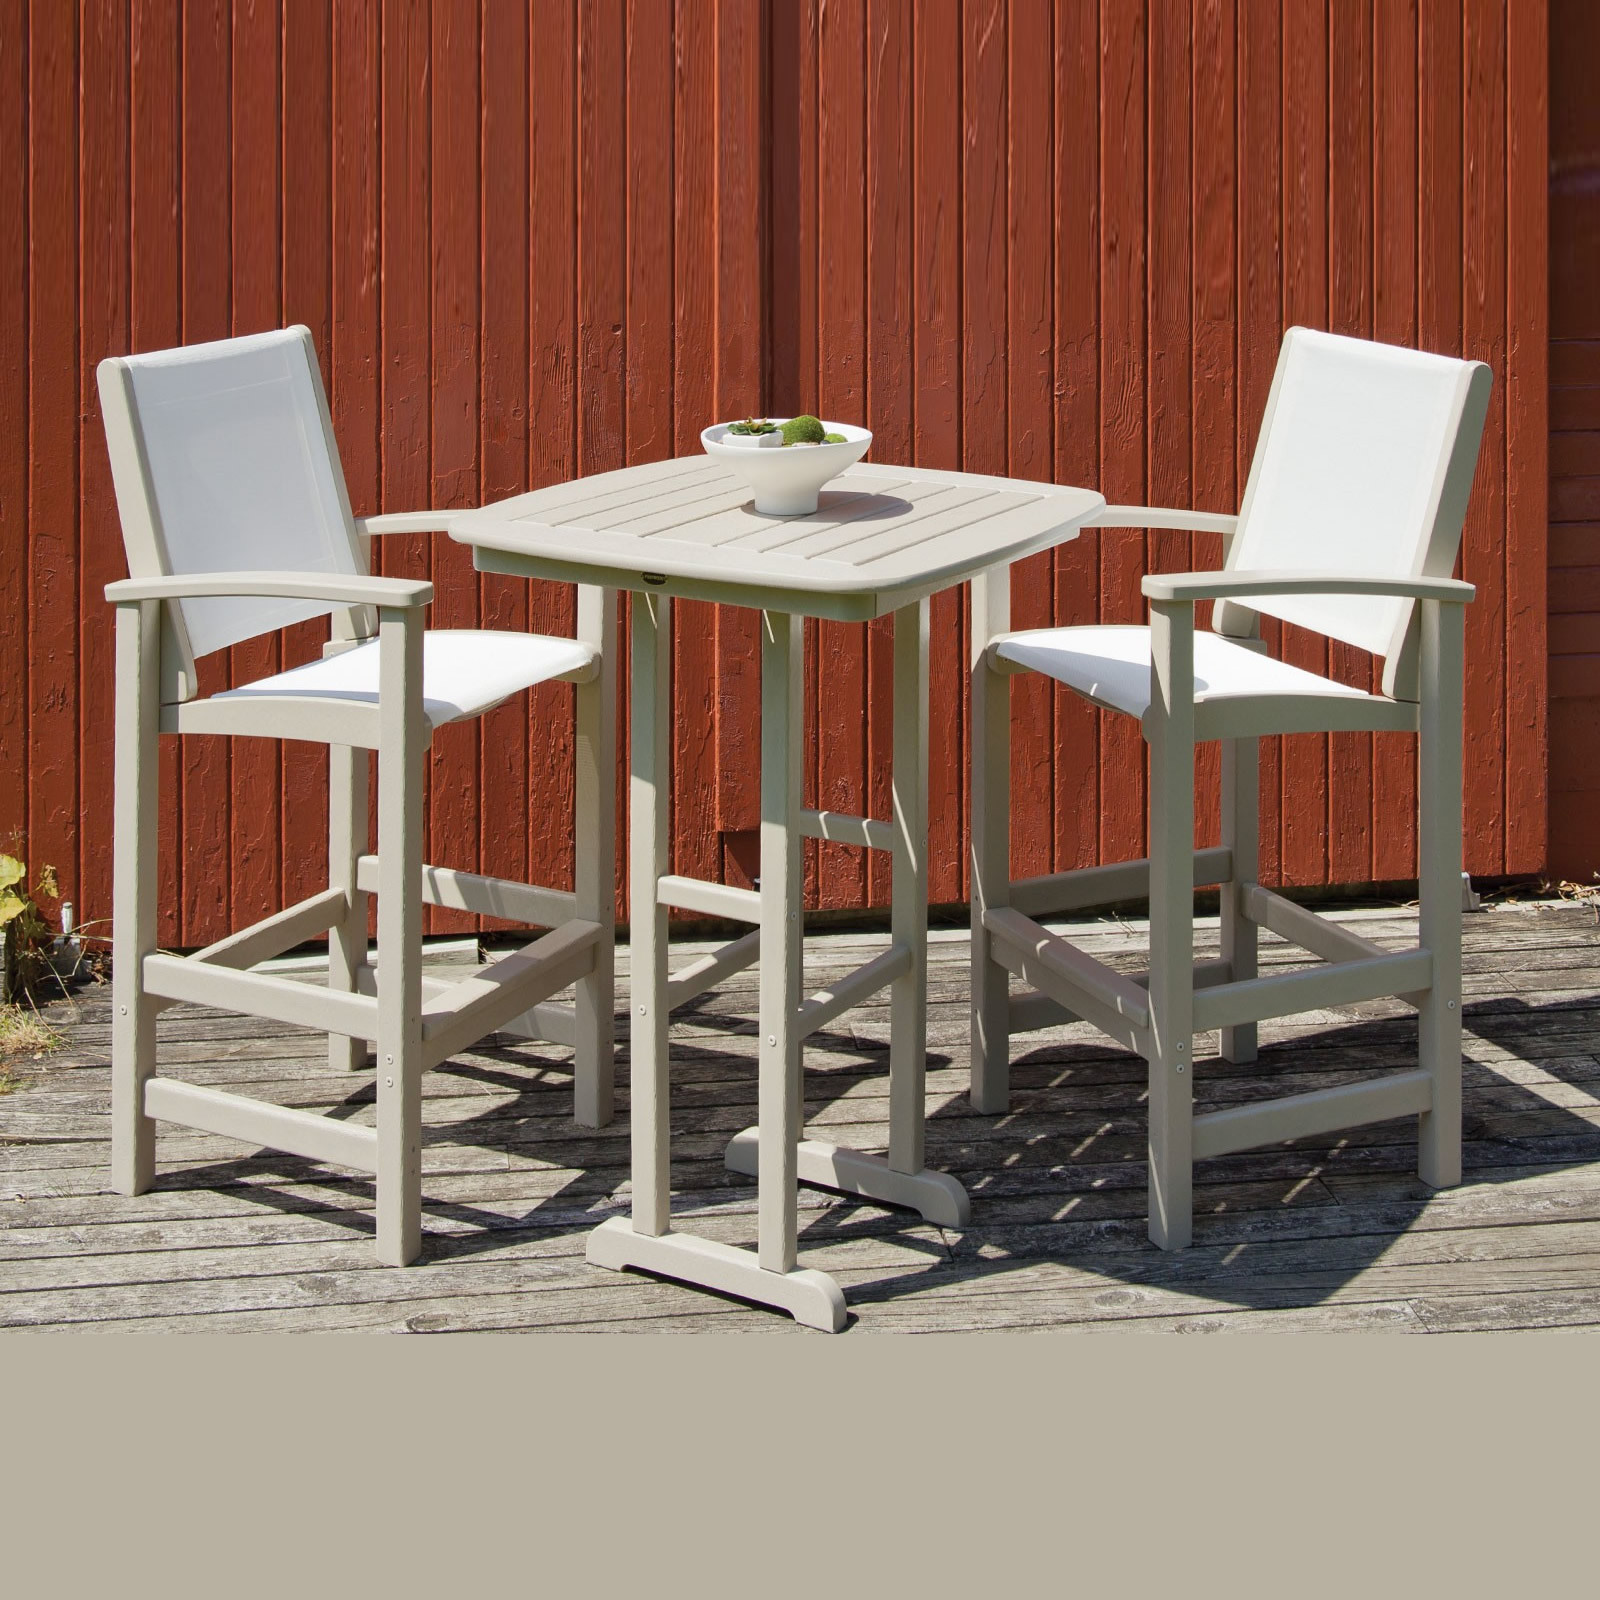 Polywood Coastal Bar Chair Coastal Polywood Outdoor Furniture Collections